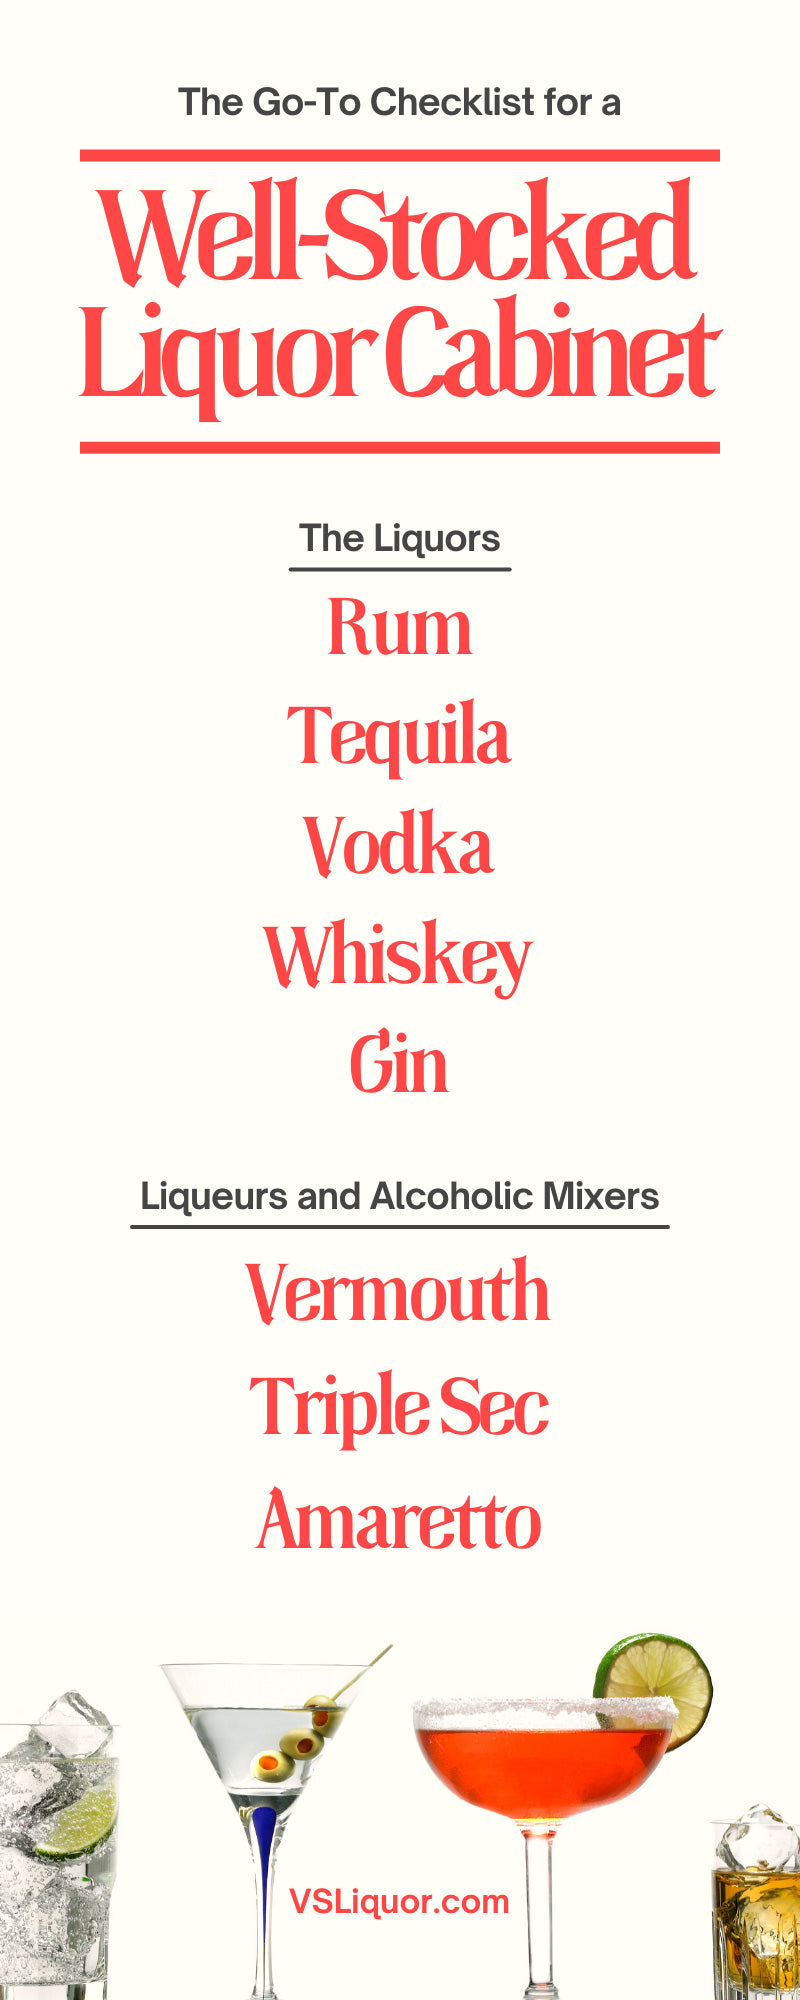 The Go-To Checklist for a Well-Stocked Liquor Cabinet